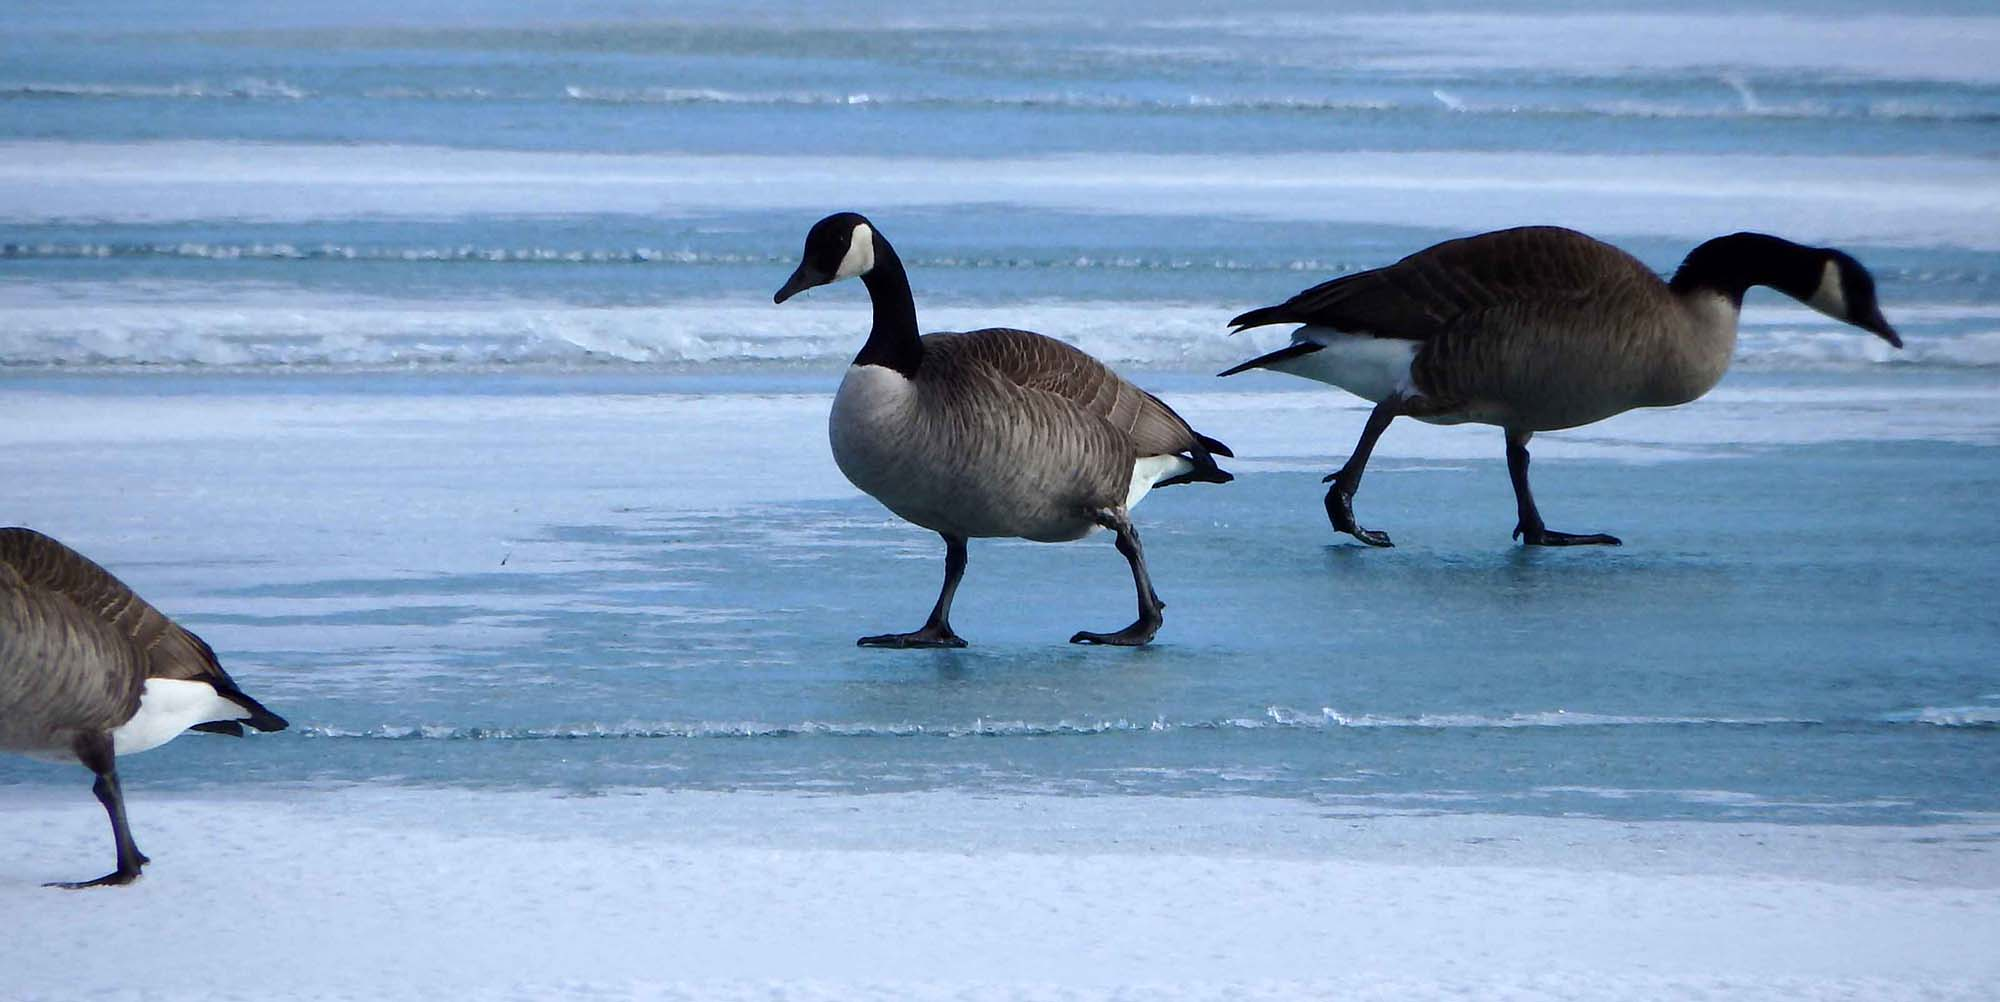 Geese on Chicago's lakefront in winter